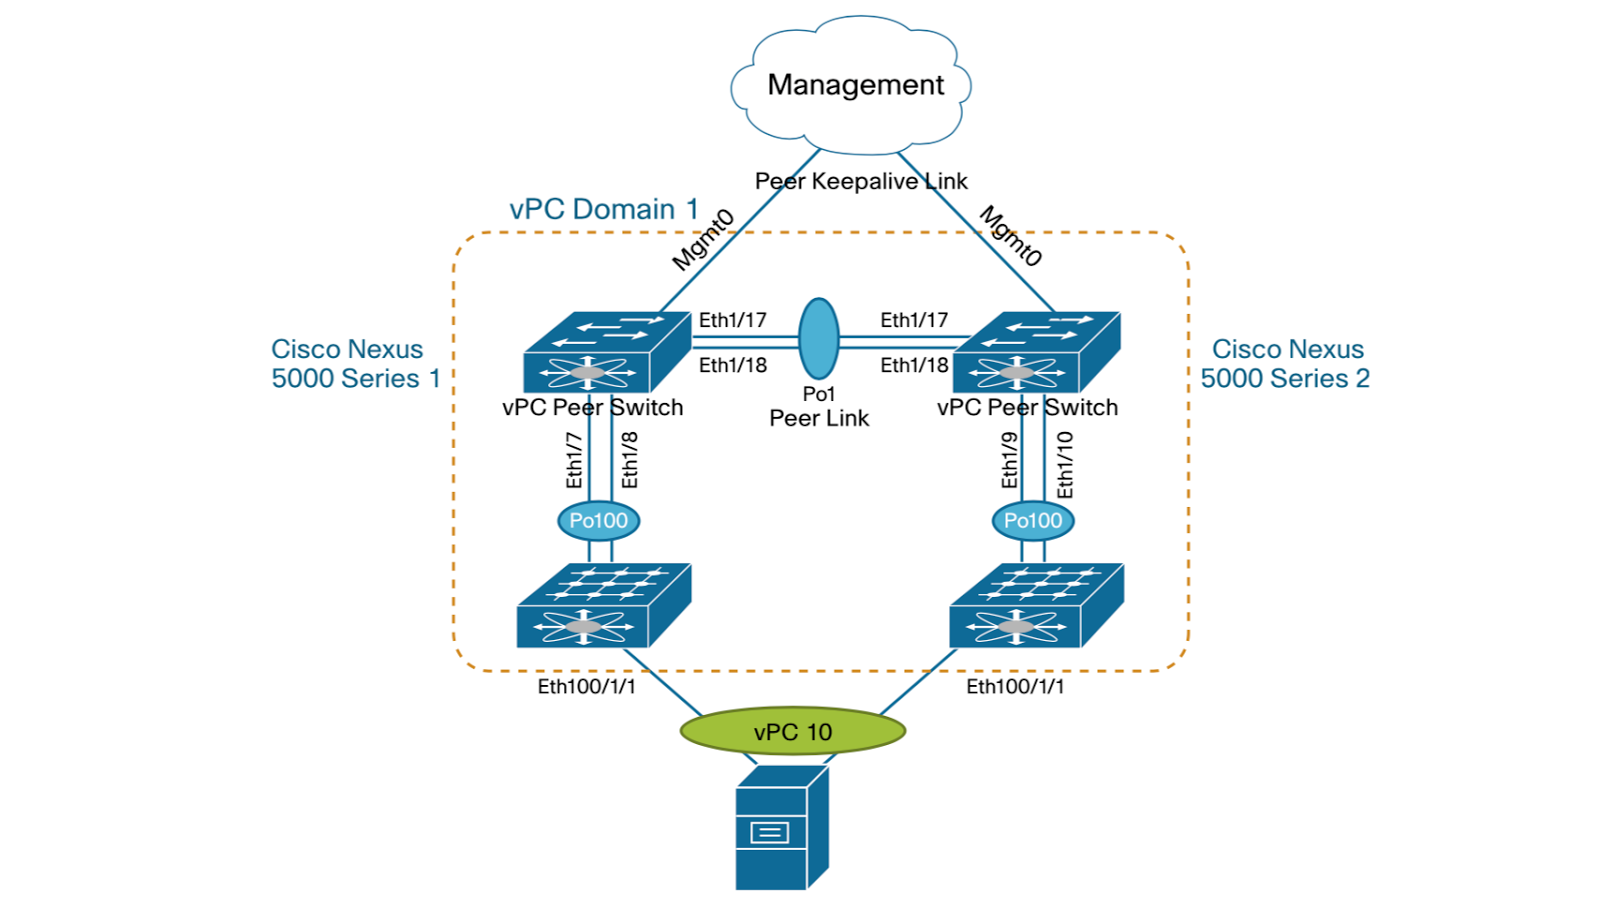 Configuring vPC on Cisco Nexus Devices - Route XP Networks Private